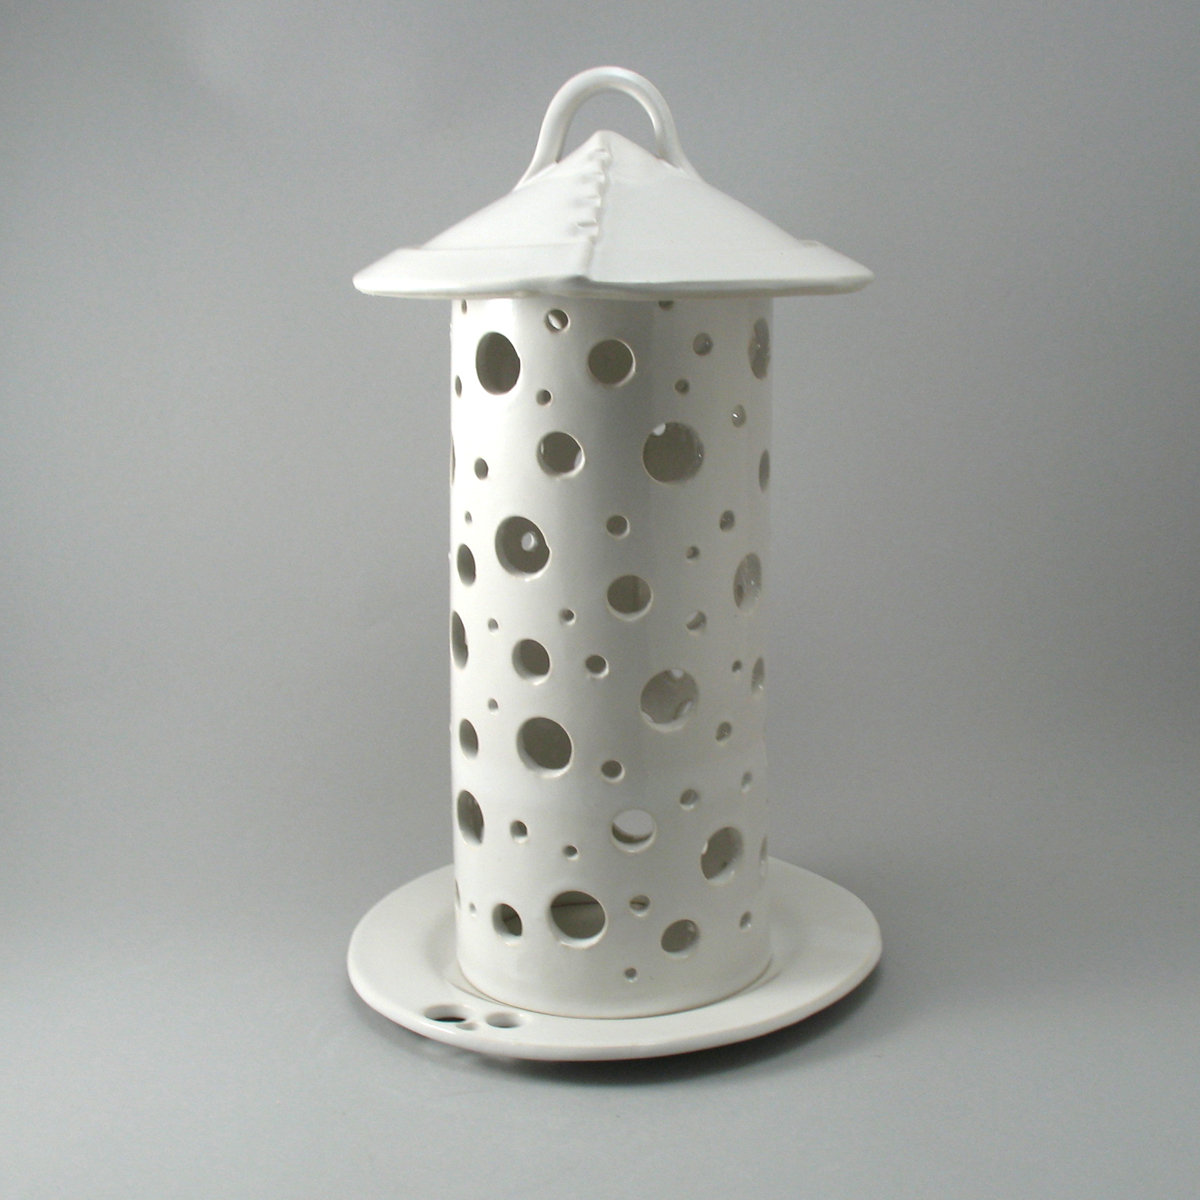 Round circle lantern white glaze by cheryl wolff ceramic for Best brand of paint for kitchen cabinets with hanging crystal candle holder